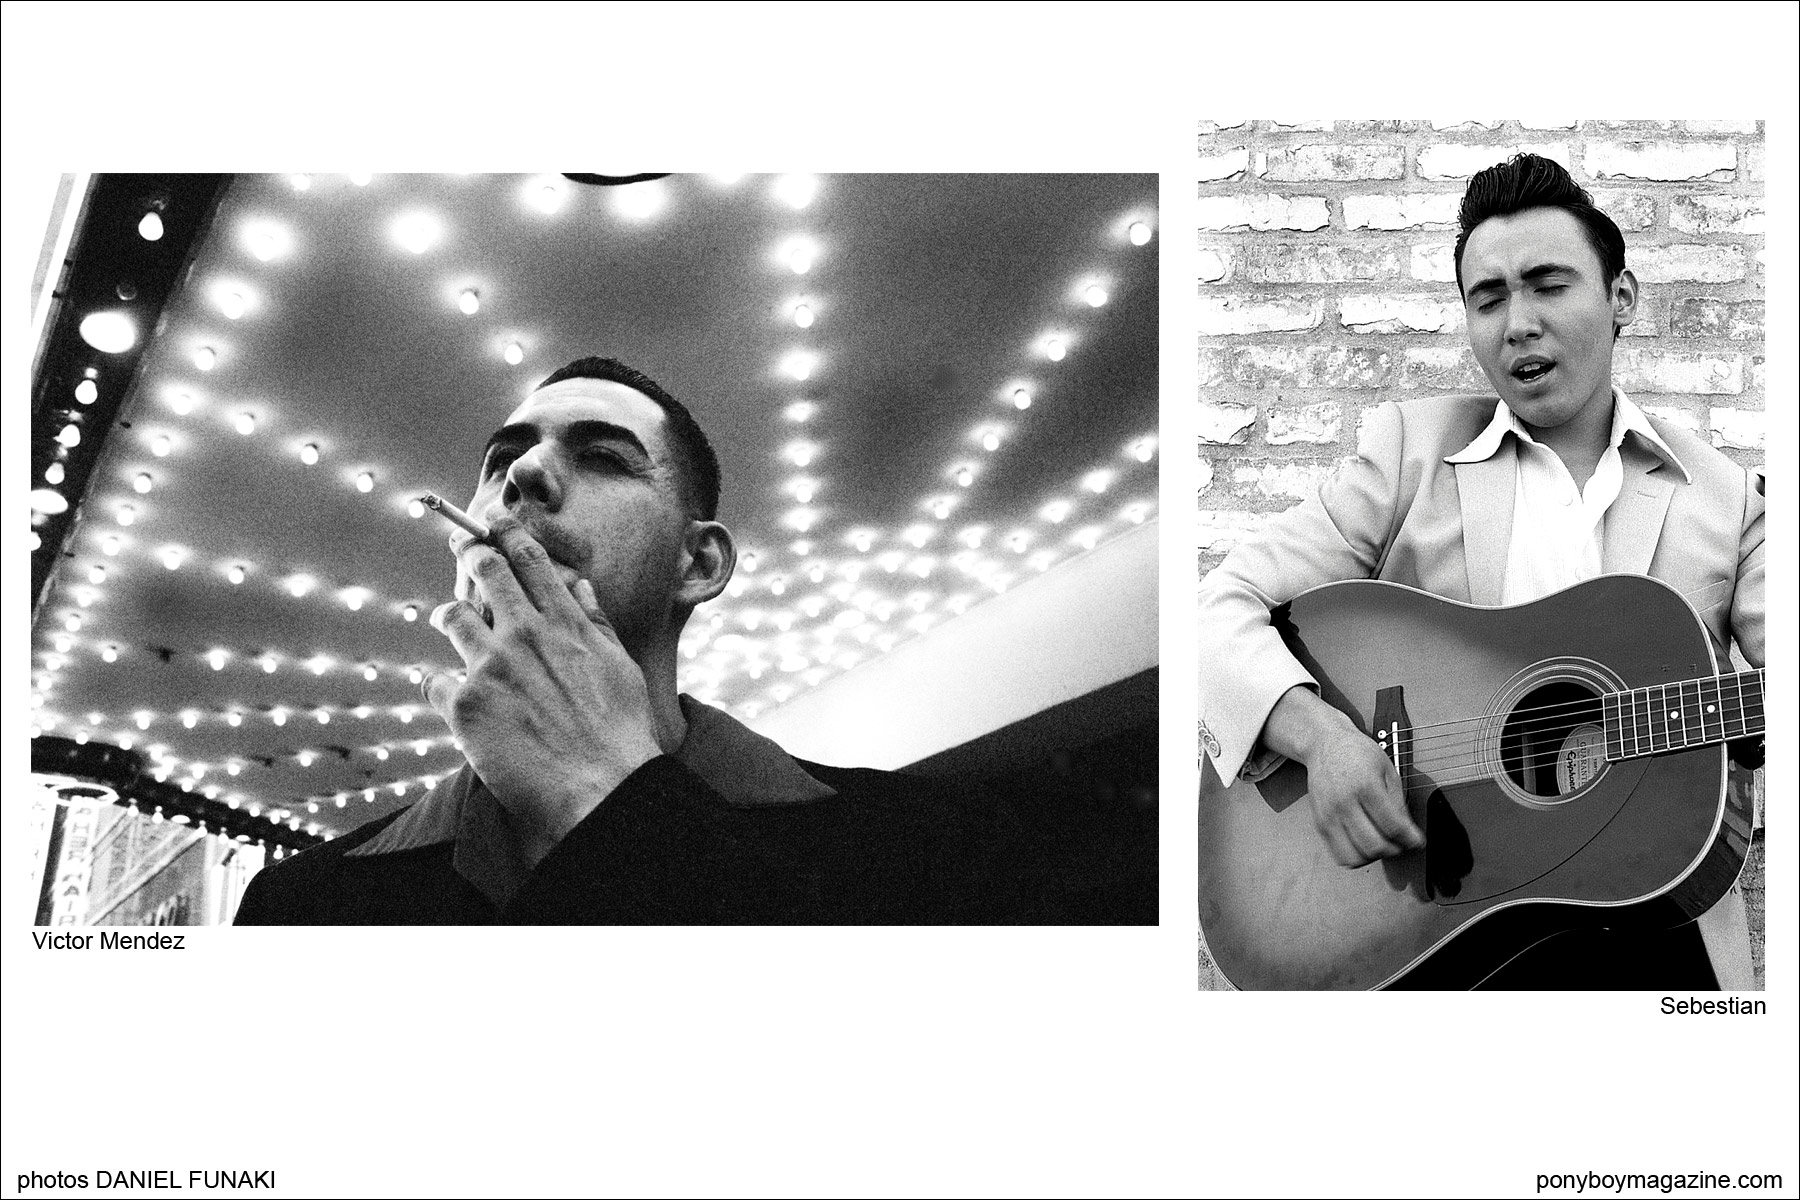 Photographs of rockabilly musicians Victor Mendez and Sebestian, on the Wild Records label, by Daniel Funaki. Ponyboy Magazine.